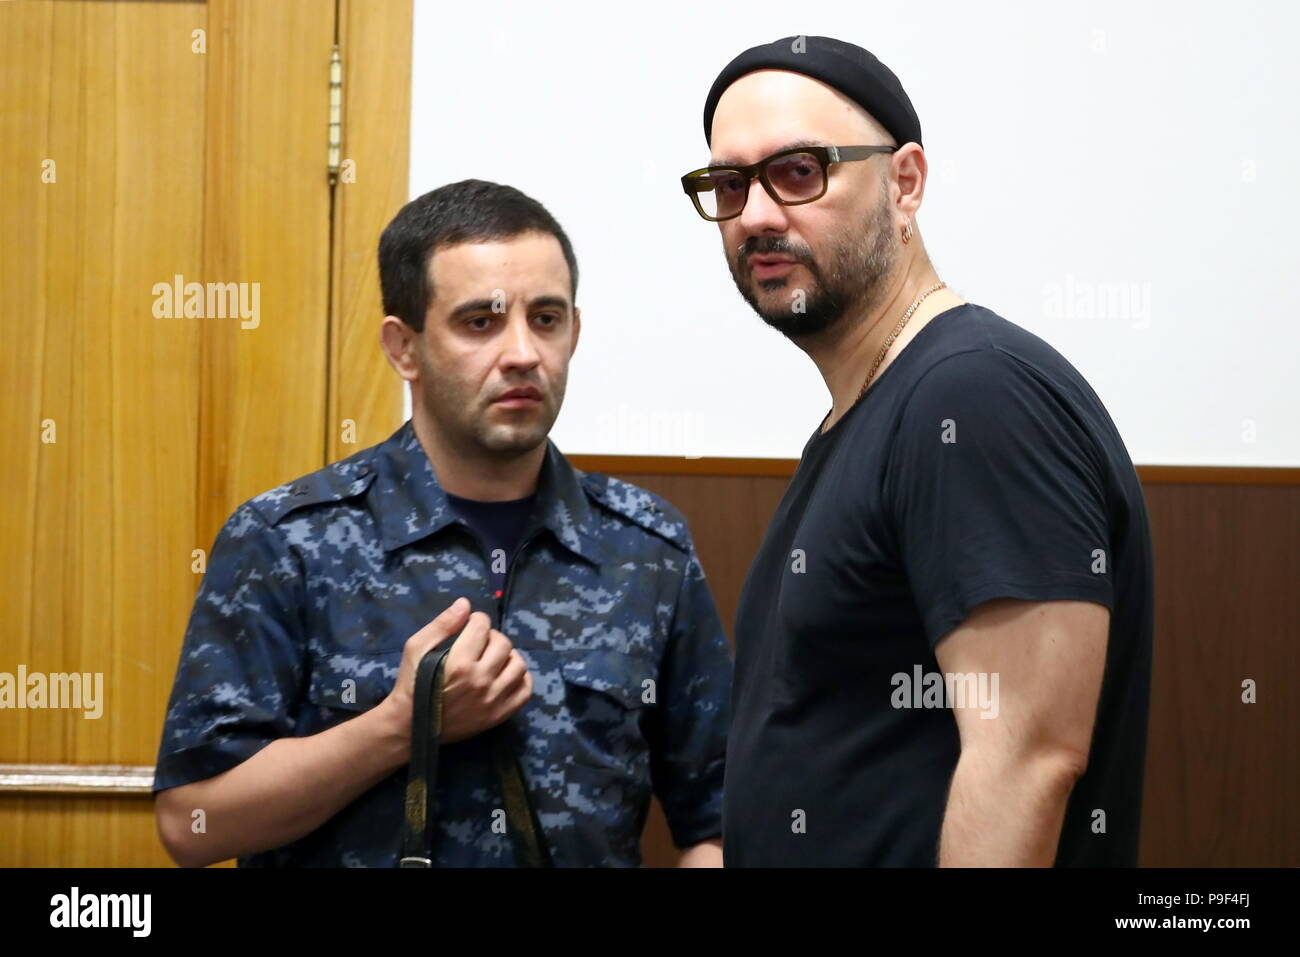 MOSCOW, RUSSIA - JULY 18, 2018: The artisitc director of Gogol Center, stage director Kirill Serebrennikov (R) arrives for a hearing into an application for a warrant for his further detention, at Moscow's Basmanny District Court; Kirill Serebrennikov was detained in August 2017, he is charged with embezzling 133m roubles of budget funds allocated in 2011-2014 for Sedmaya Studiya (Seventh Studio) theatre collective; the criminal investigation into the alleged fraud was launched by the Investigative Committee of Russia in 2015. Anton Novoderezhkin/TASS - Stock Image